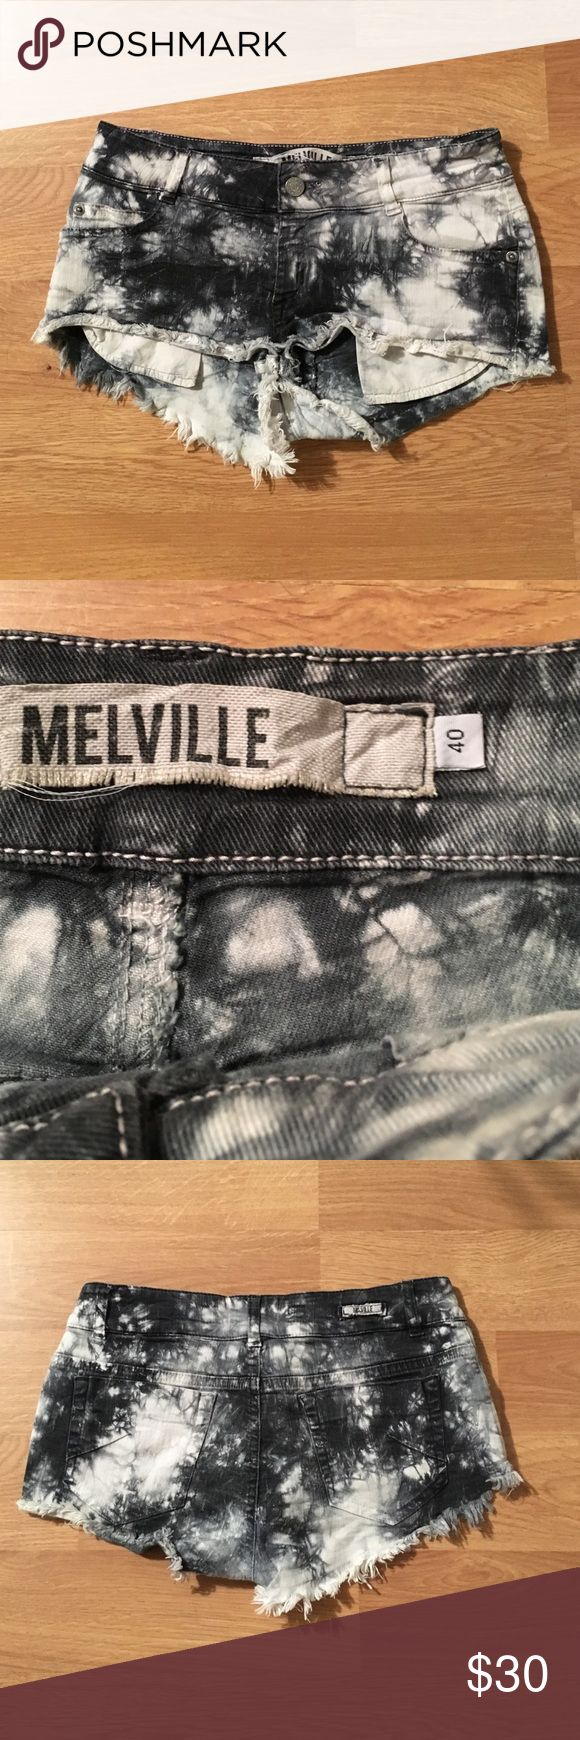 Brandy Melville shorts Brandy Melville tye dye denim shorts- size is 40-colors are black and white. Great fit- perfect for summer. Brandy Melville Shorts Jean Shorts